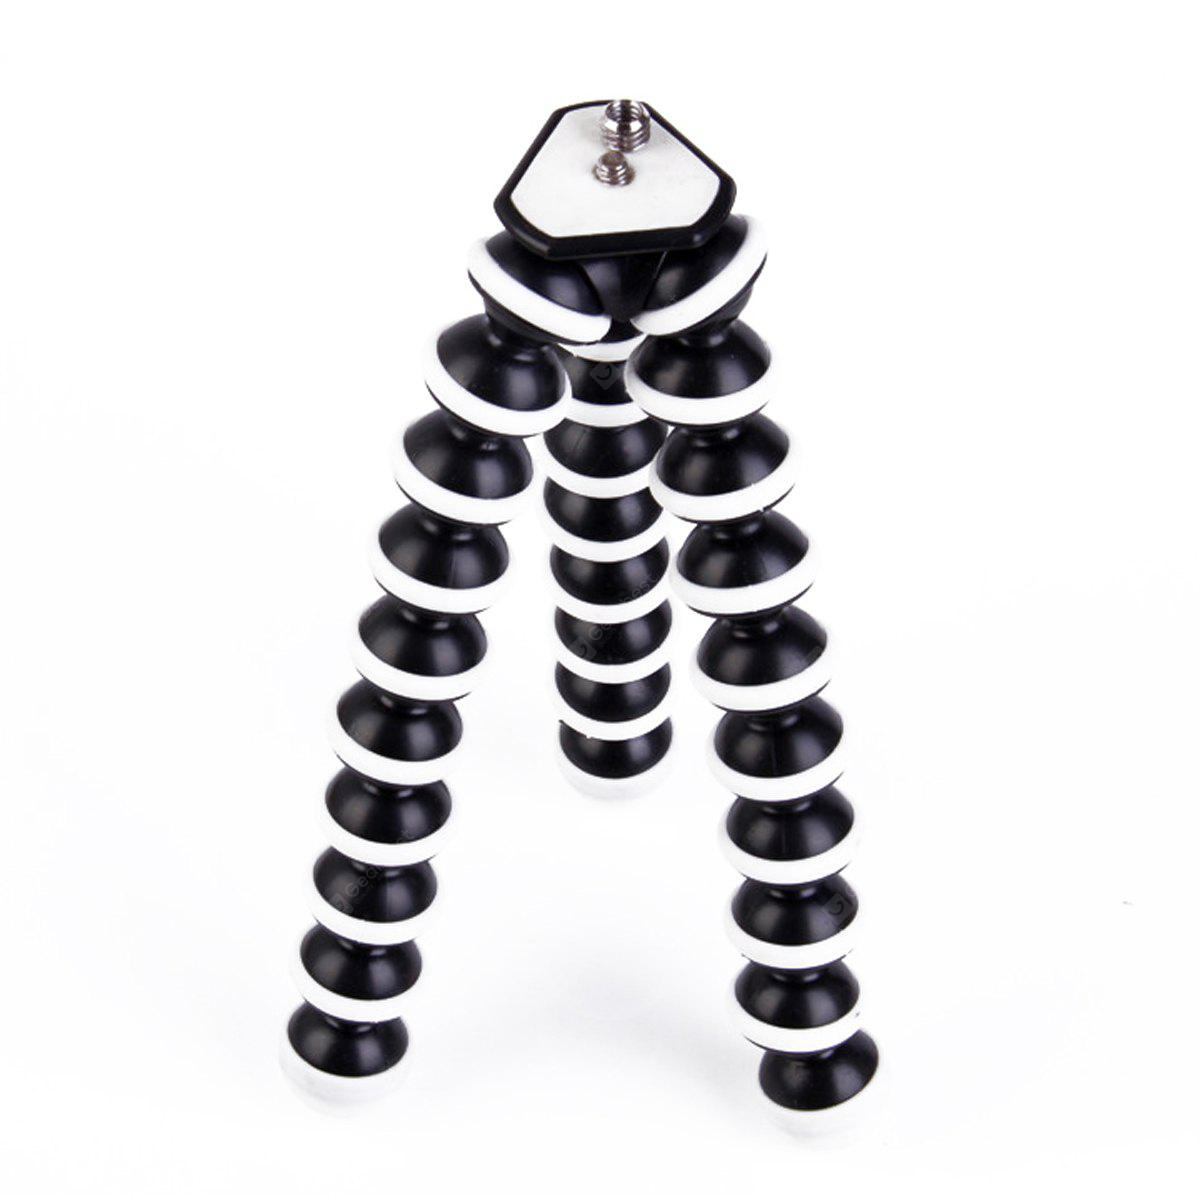 2 In 1 Action Camera Octopus Multi Function Tripod Mounted